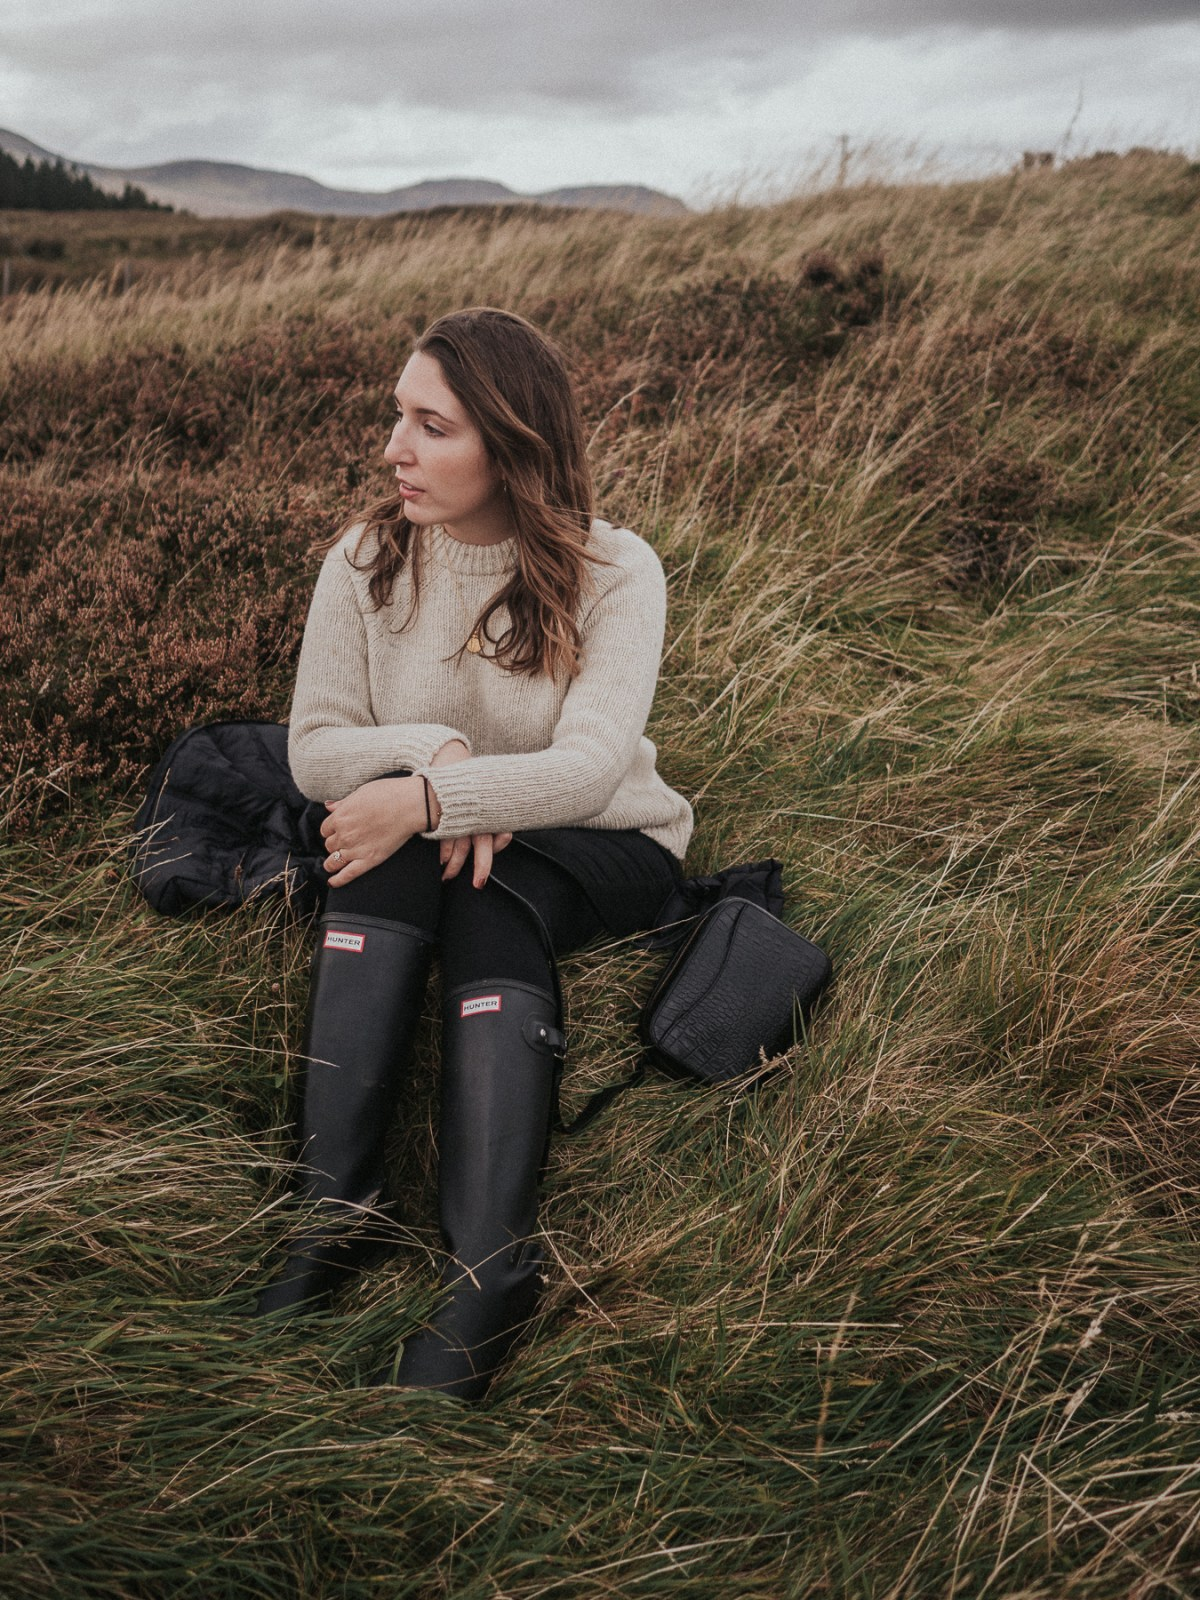 Sitting in a Scottish field wearing a Finisterre sweater, Hunter boots, and a Cuyana croc bag | A One Week Scottish Highlands Travel Itinerary | a detailed account of exactly what we did to make the best 7 day roadtrip through the Scottish Highlands | W&S